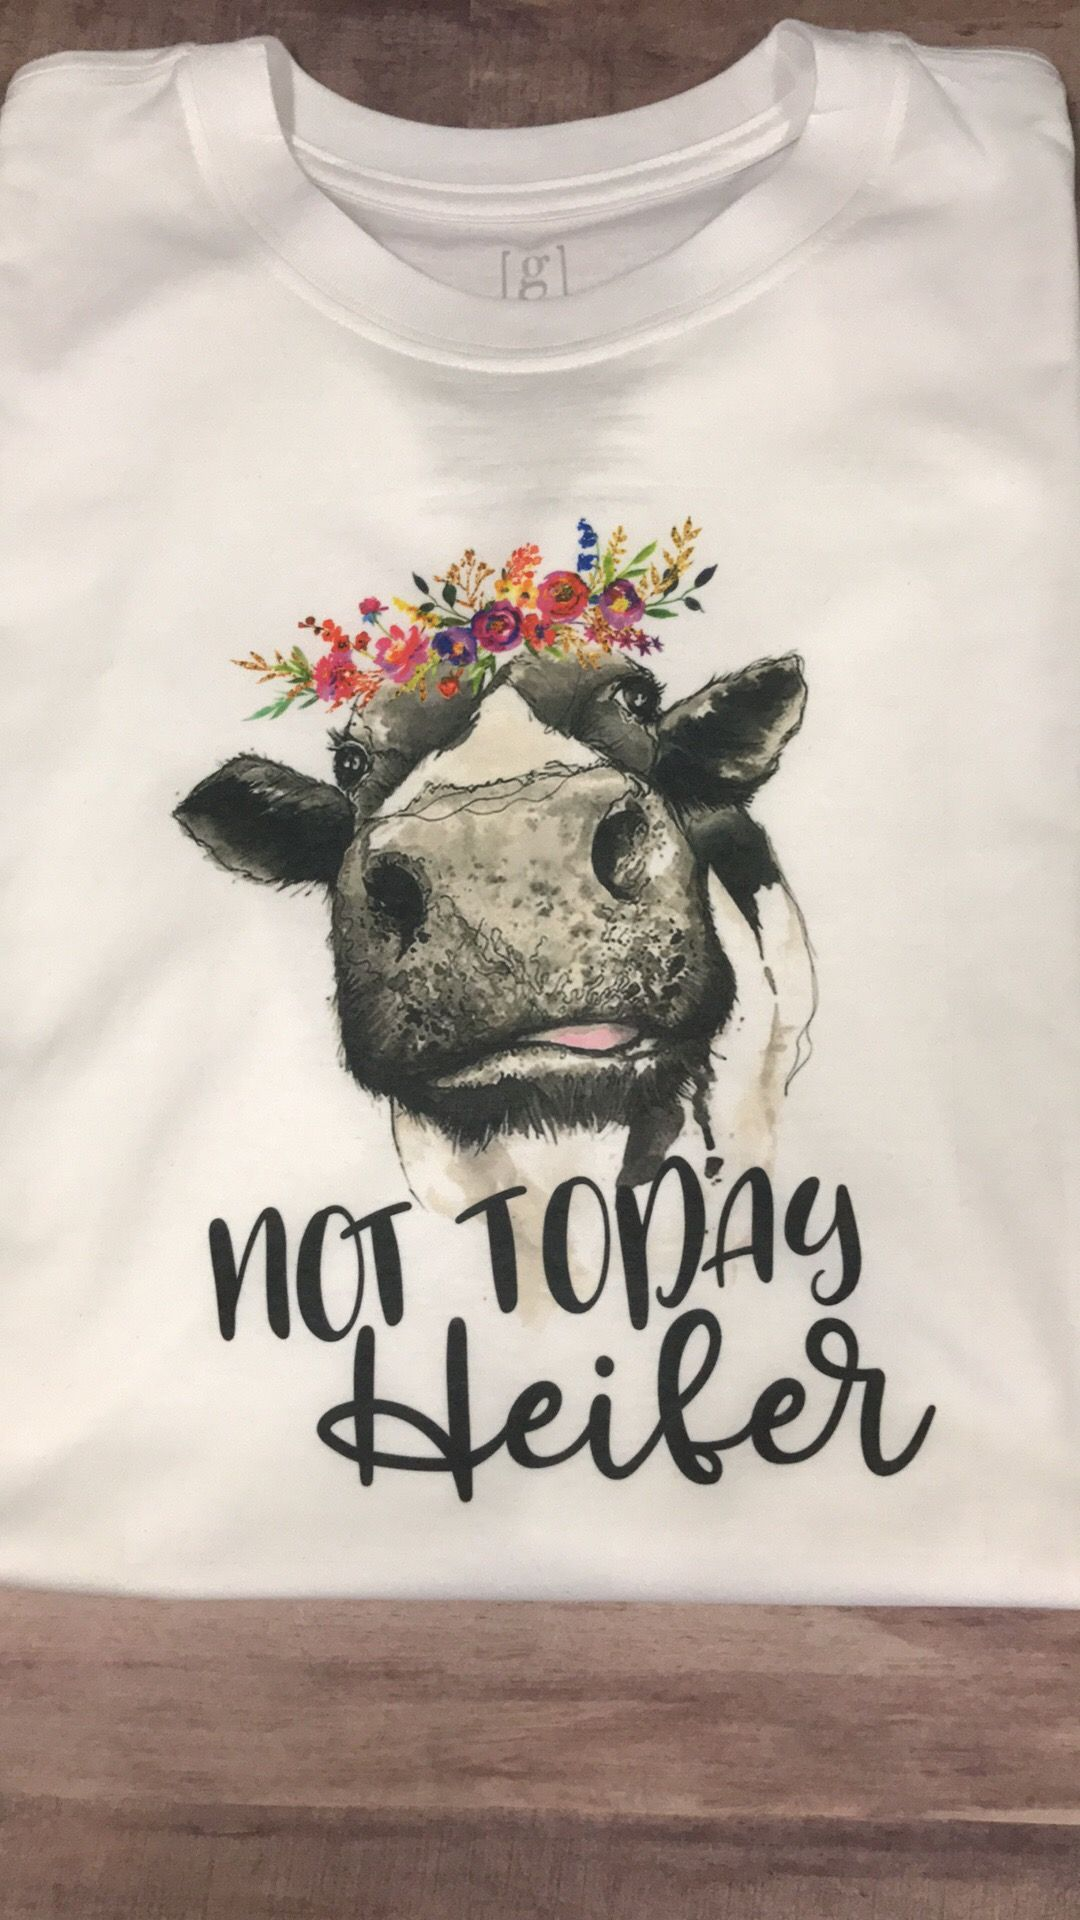 9d3a6290c https://peachymama4.etsy.com Not today Heifer Tshirts and transfers Tumbler